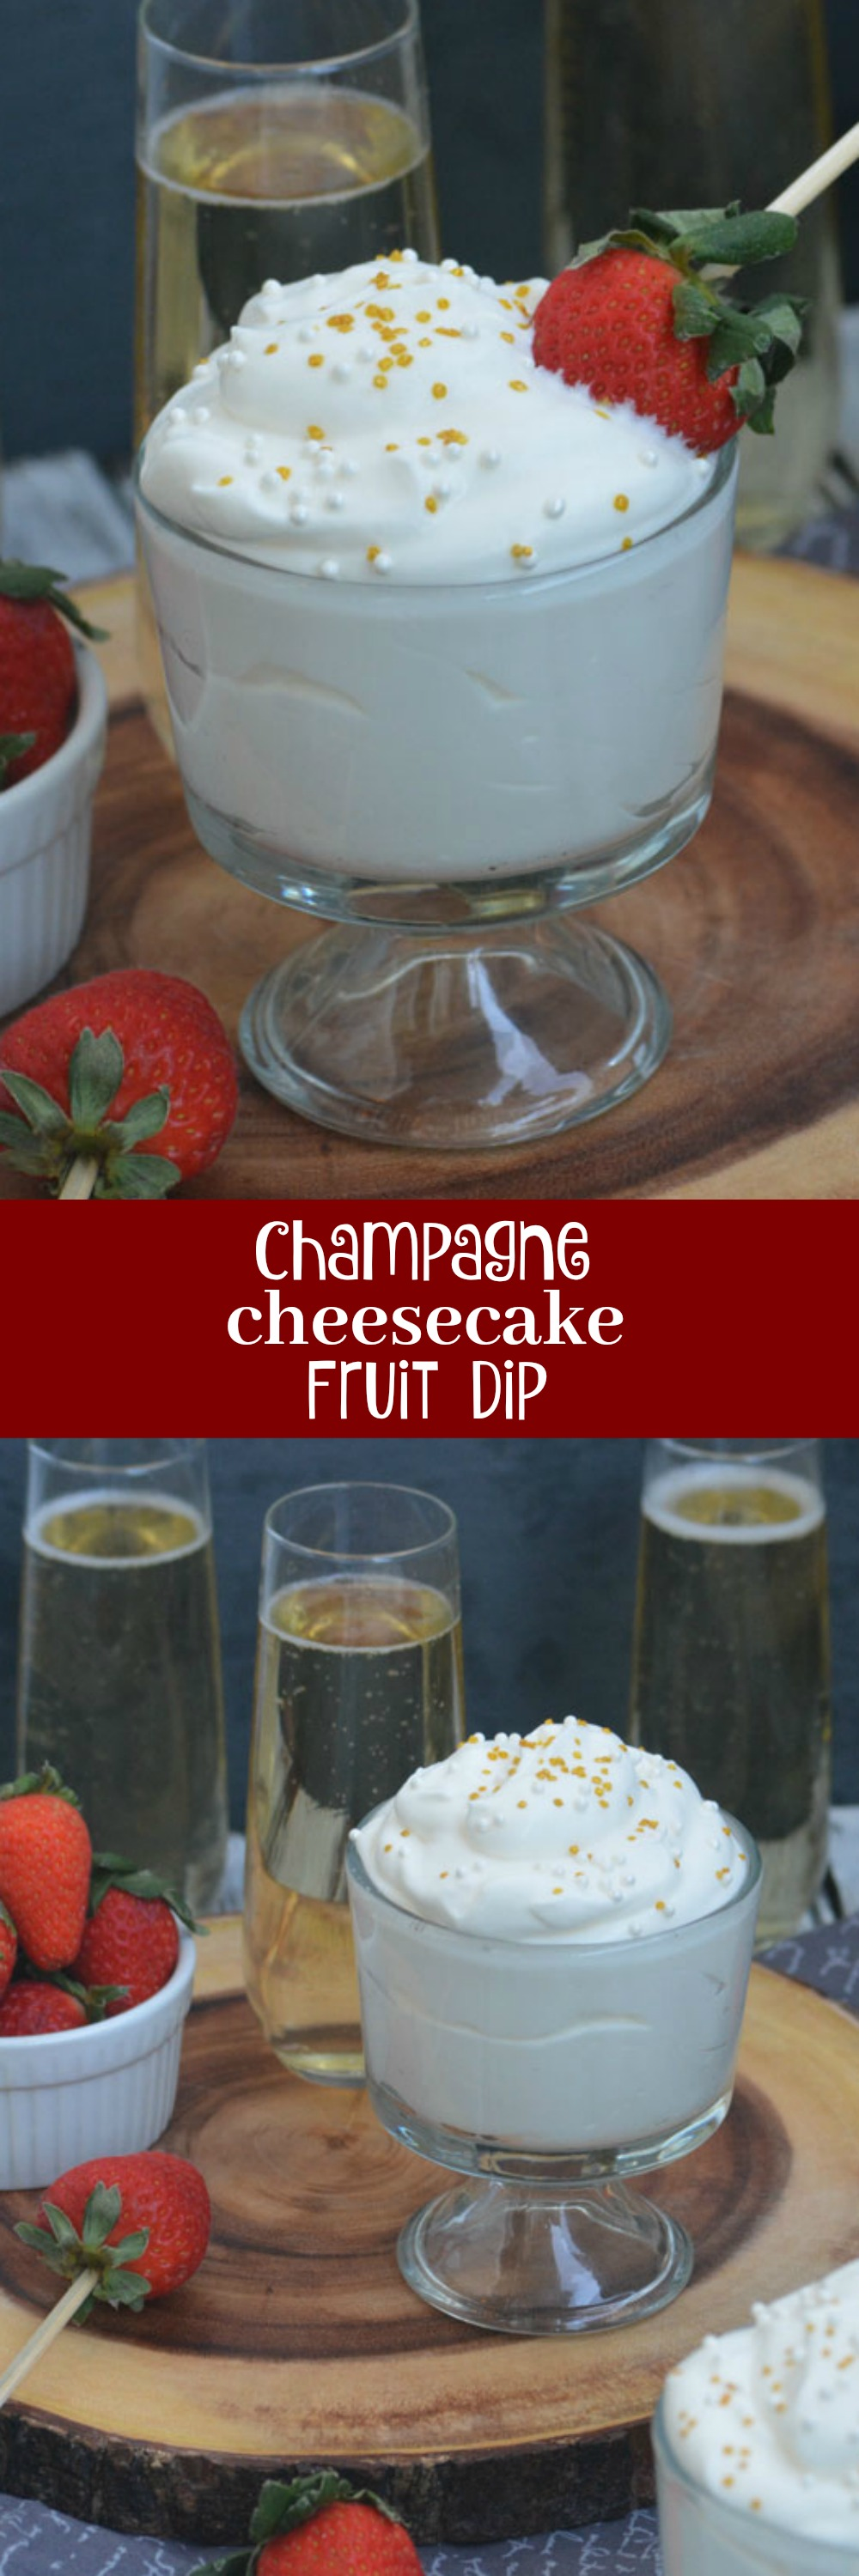 Party season is in full swing. Don't let your menu miss out- this Champagne Cheesecake Fruit Dip begs to be on the nice list. It's also a perfect way to ring in the New Year- in boozy dessert form you can feel less bad about, since it's paired with your favorite fruits.